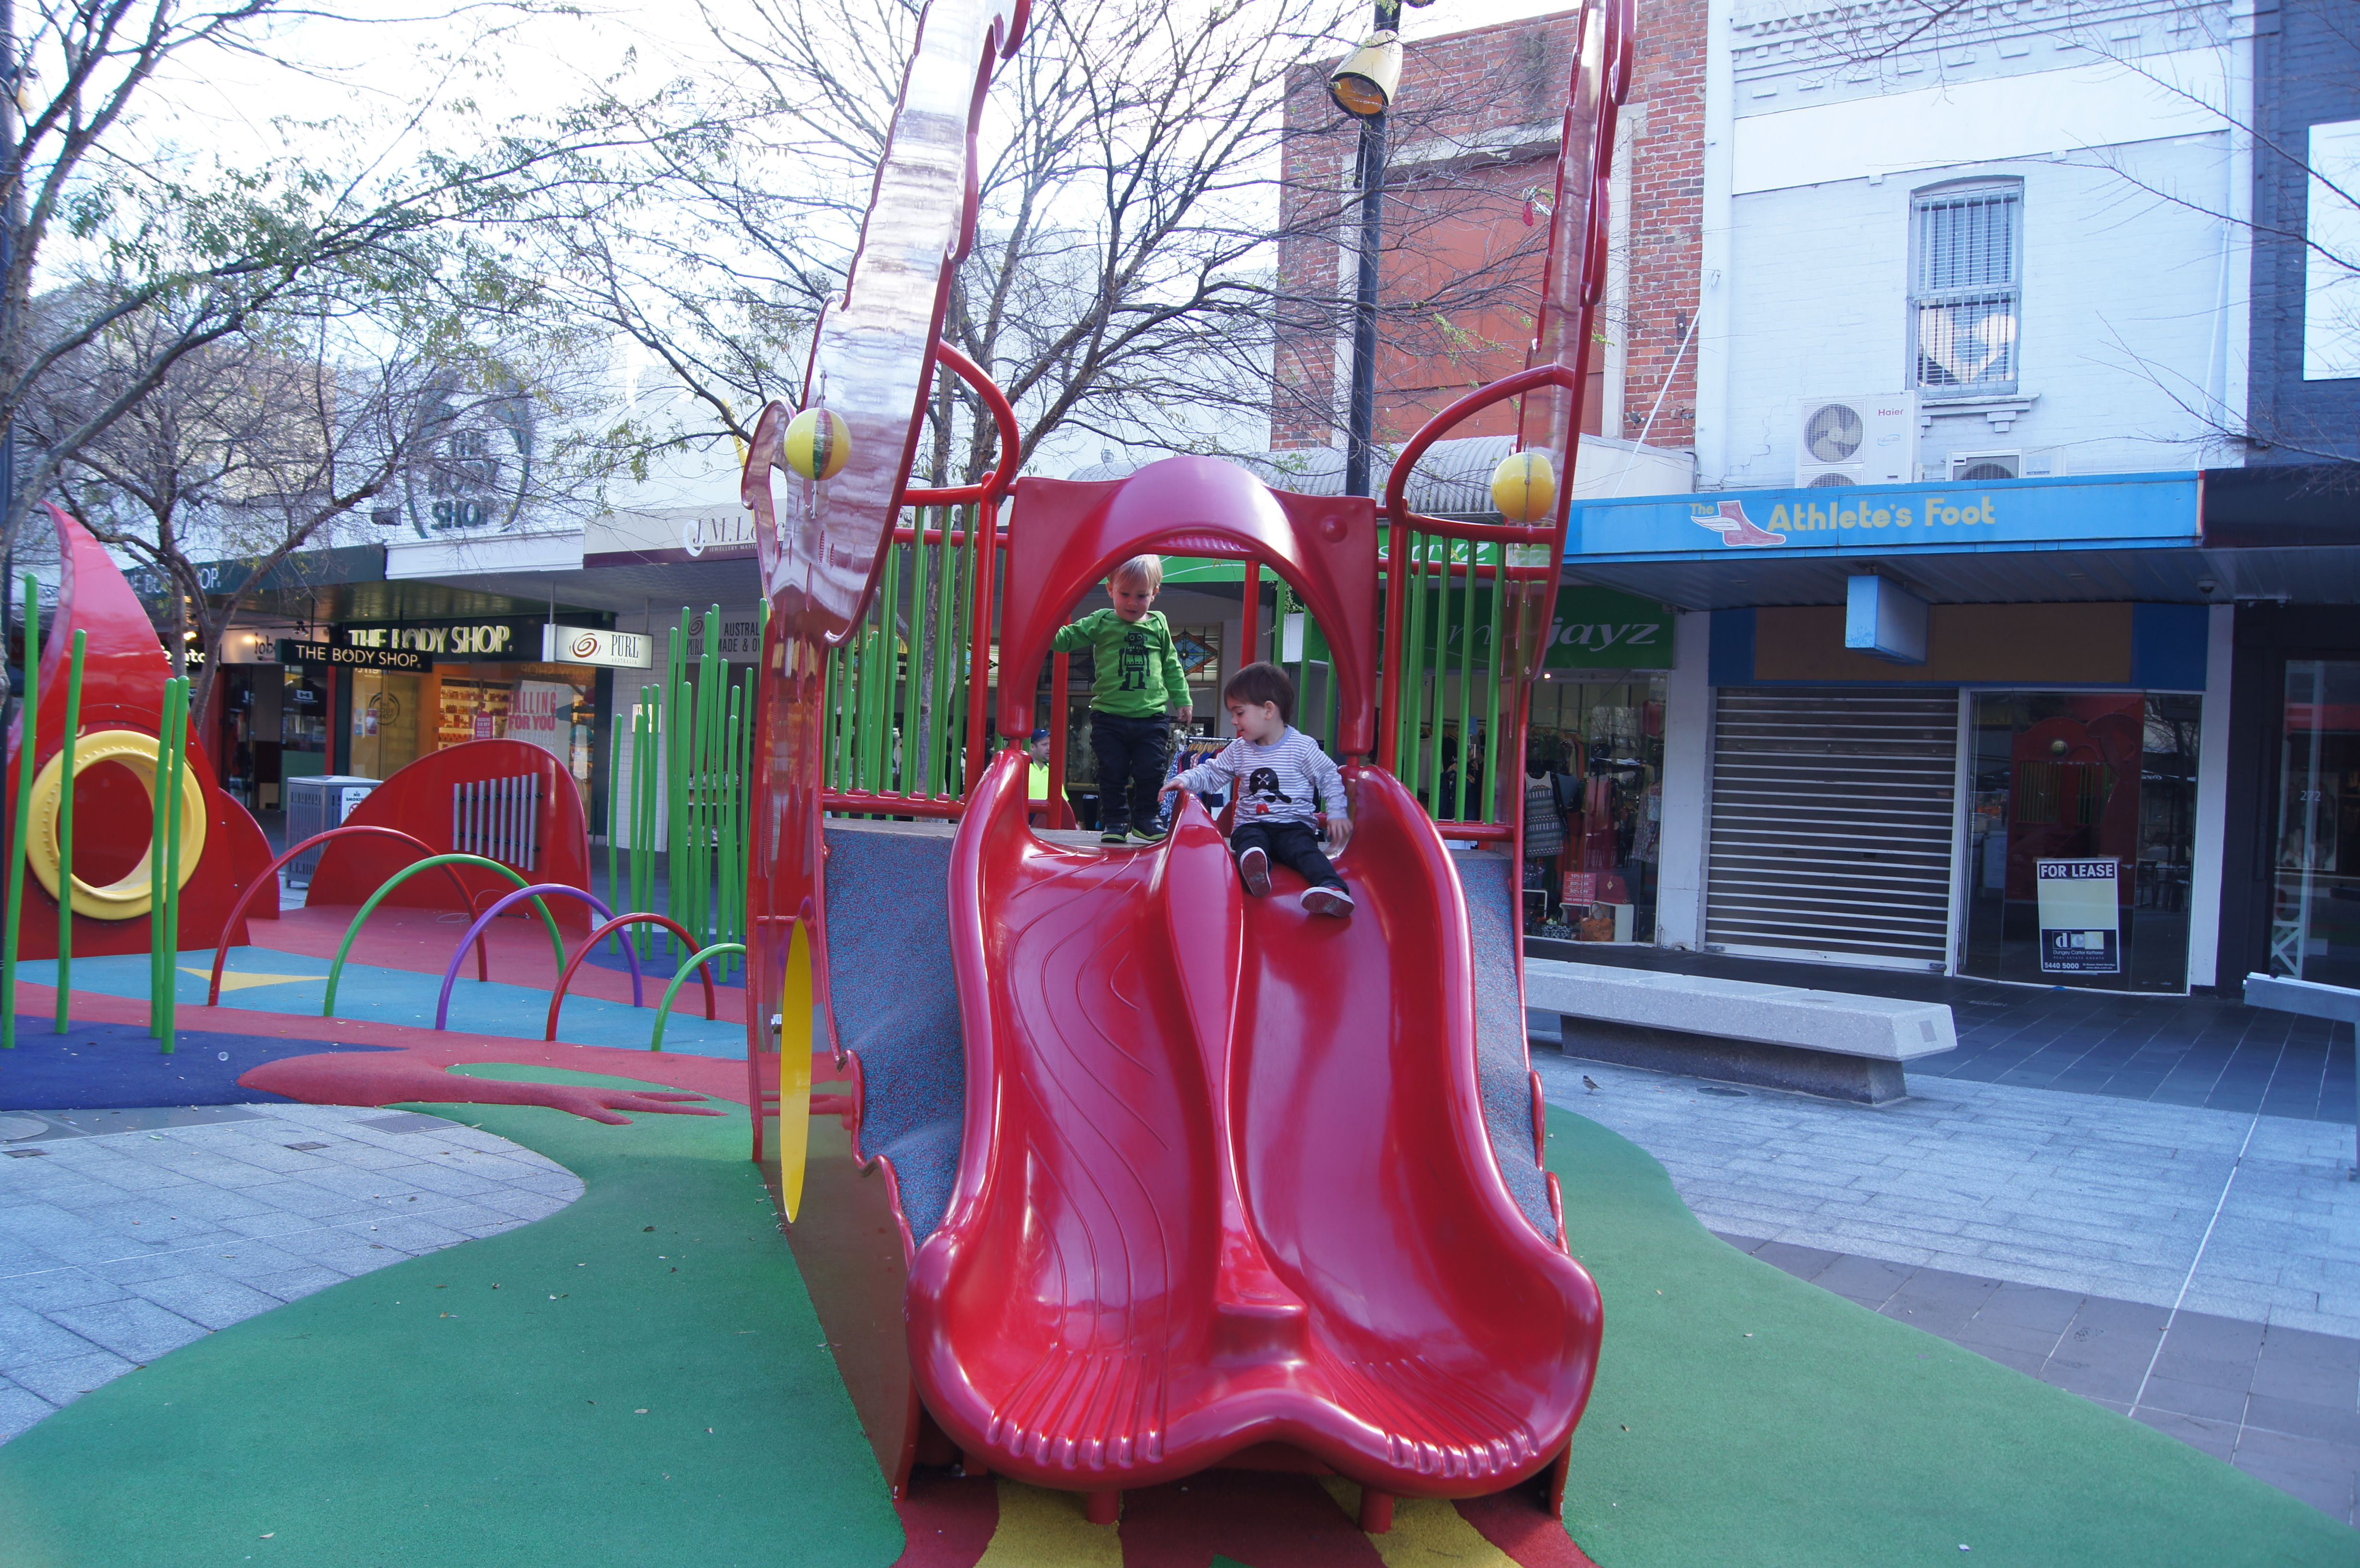 Hargreaves St Playground